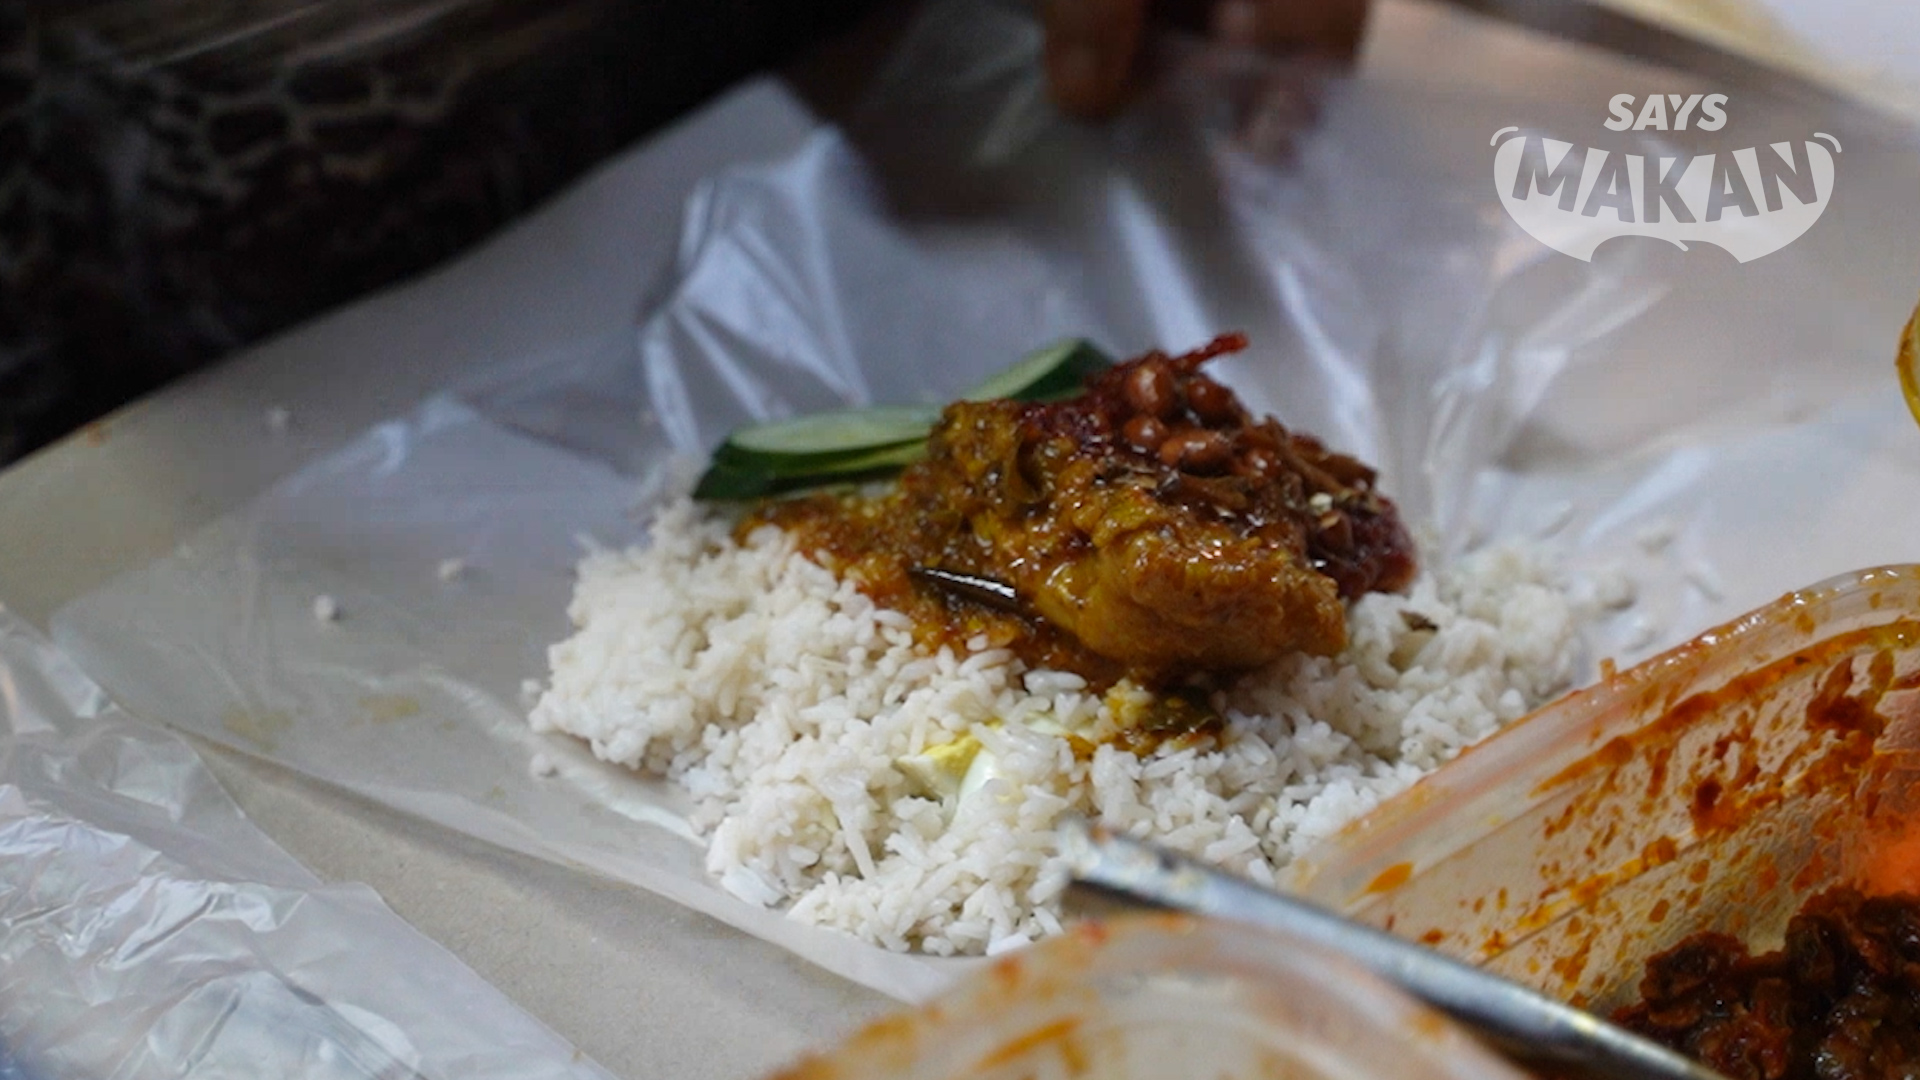 Image from Jay Zee/SAYS Makan